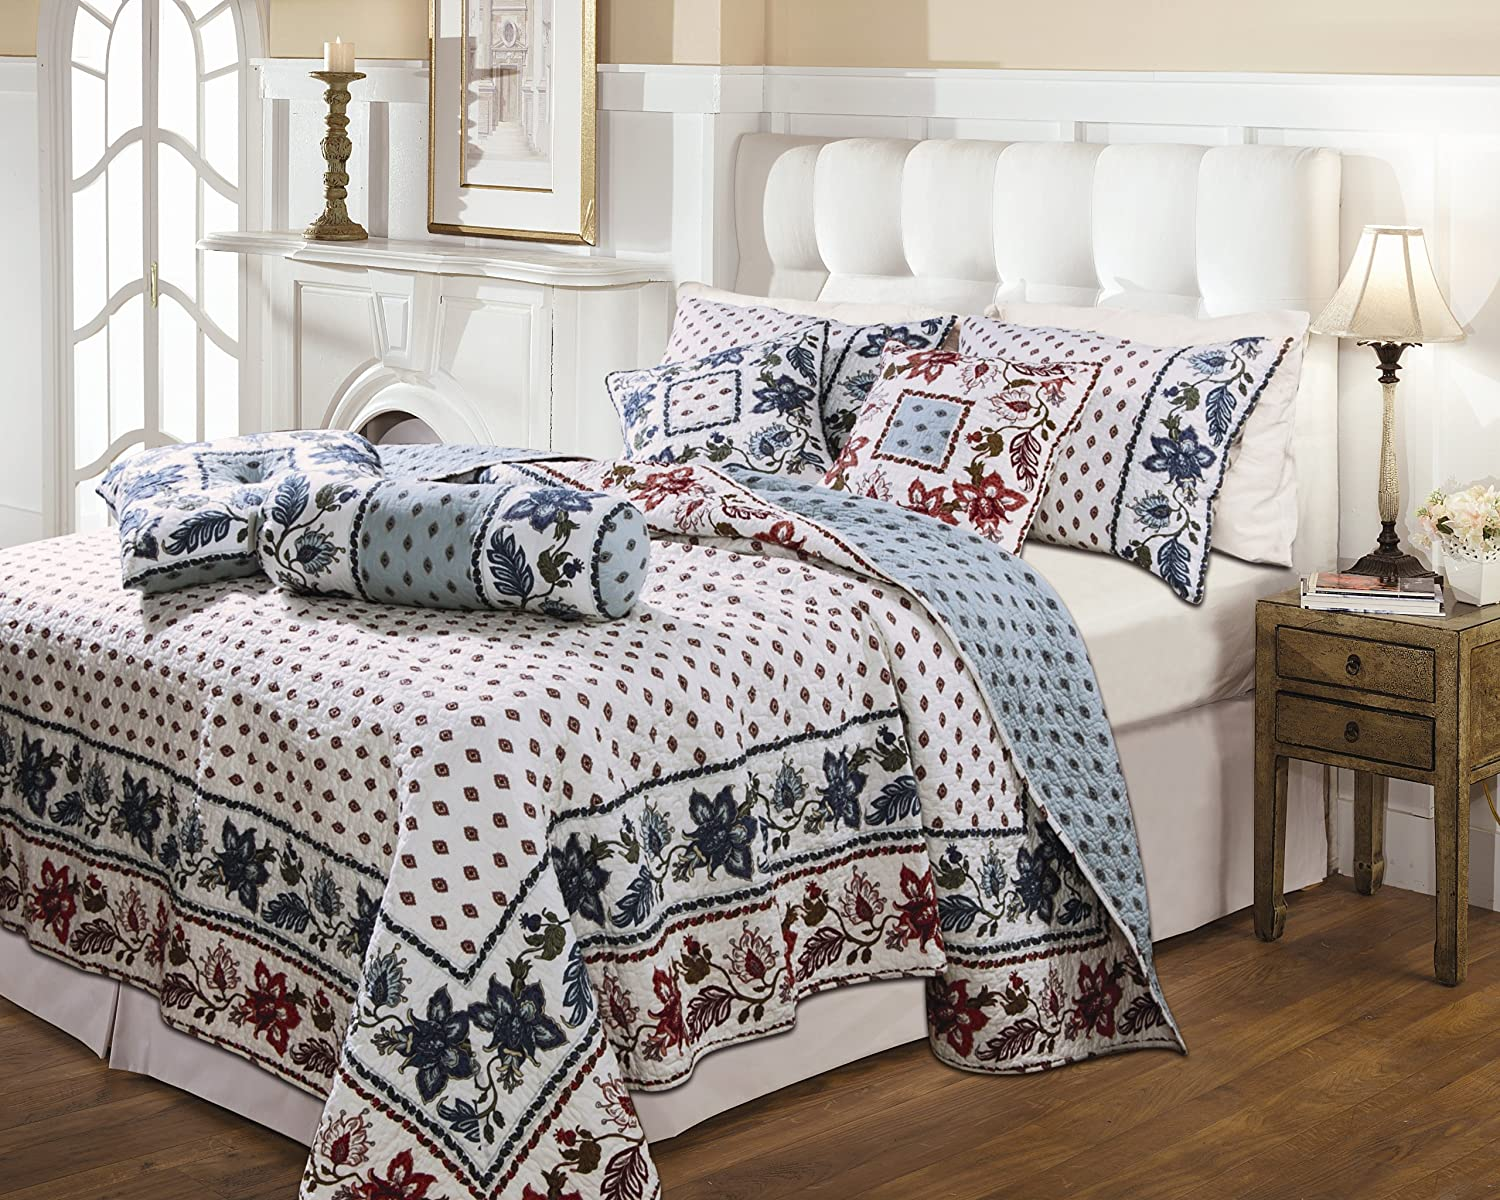 Greenland Home Serenity Quilt Set, Full/Queen, Sky